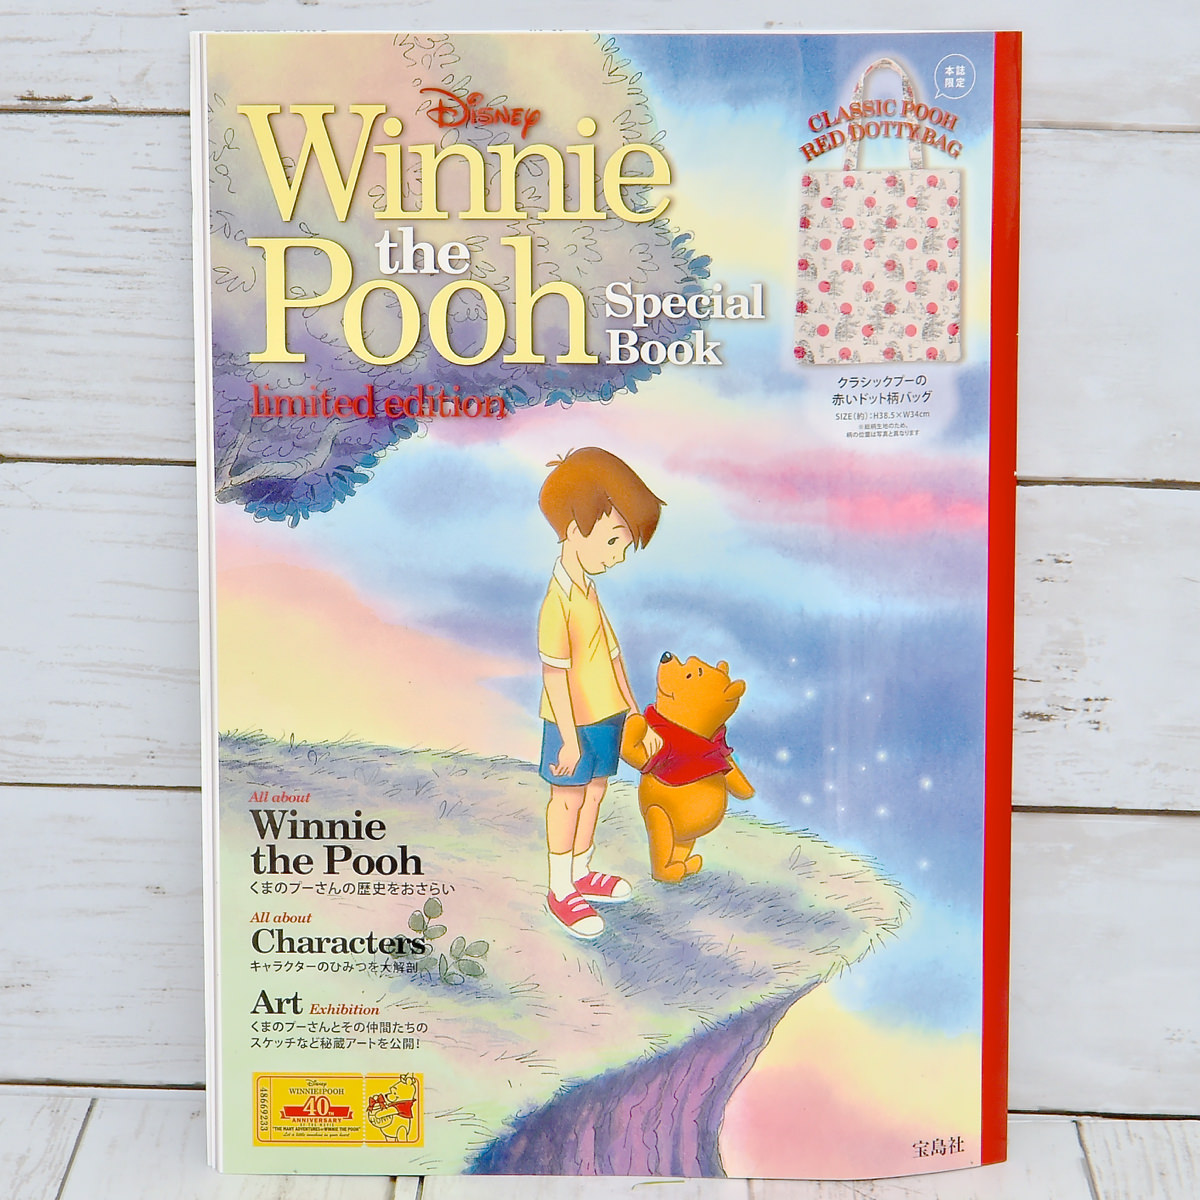 Disney Winnie the Pooh Special Book Limited Edition